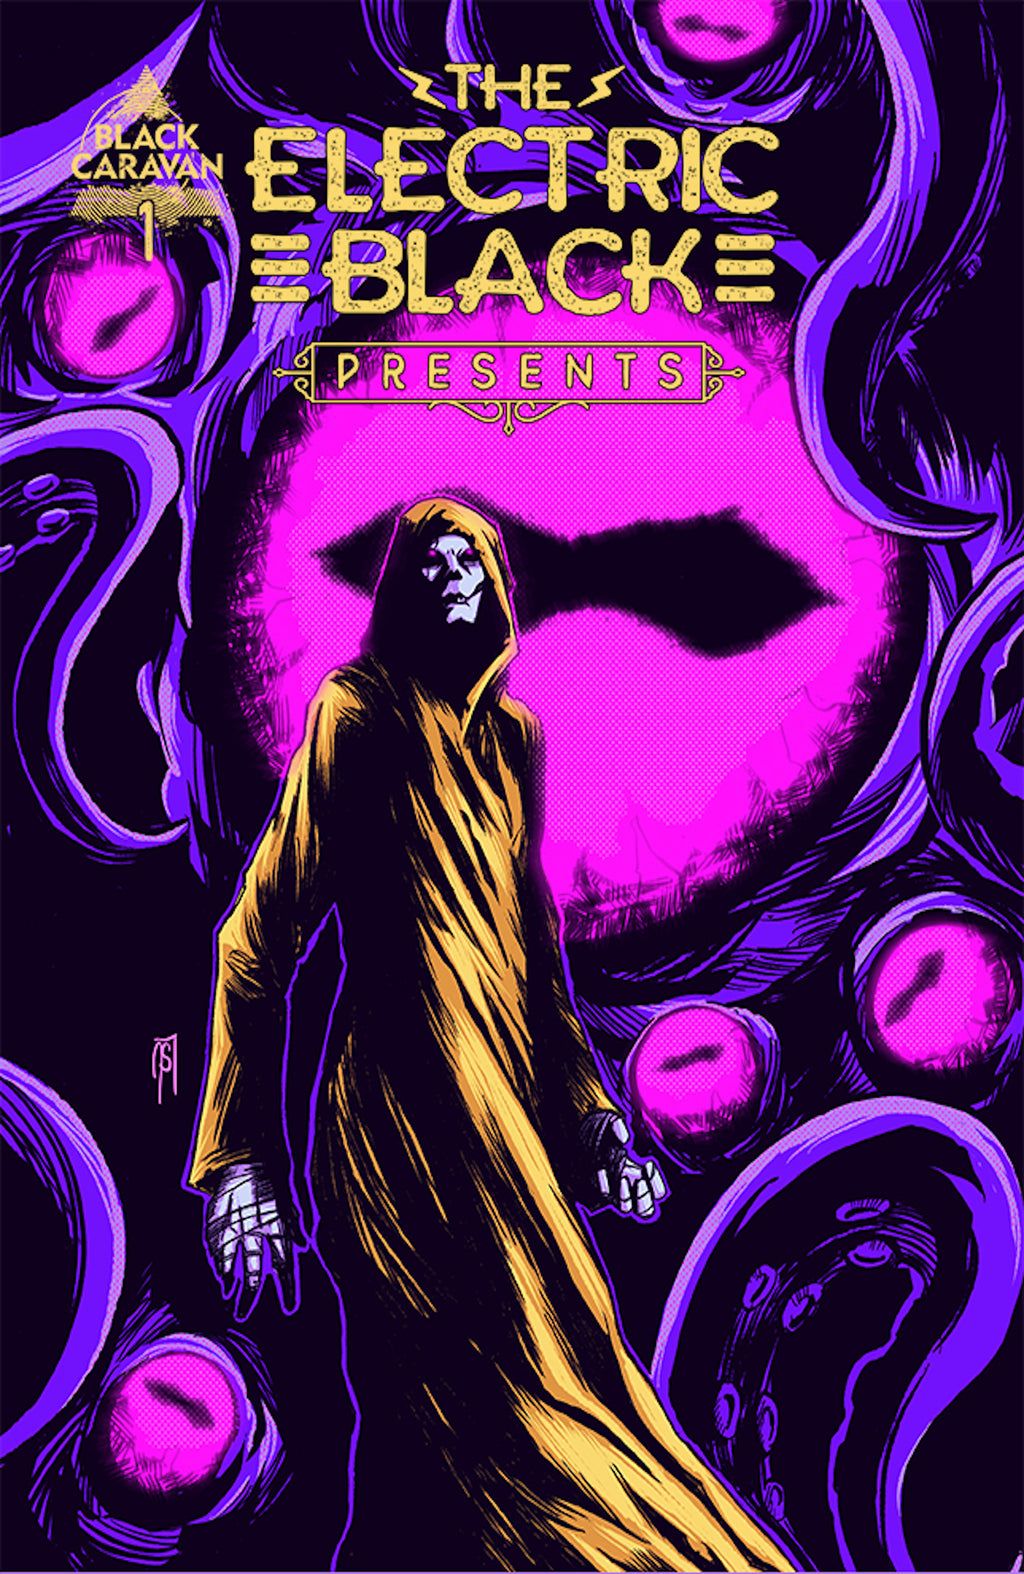 The Electric Black Presents #1 - DIGITAL COPY